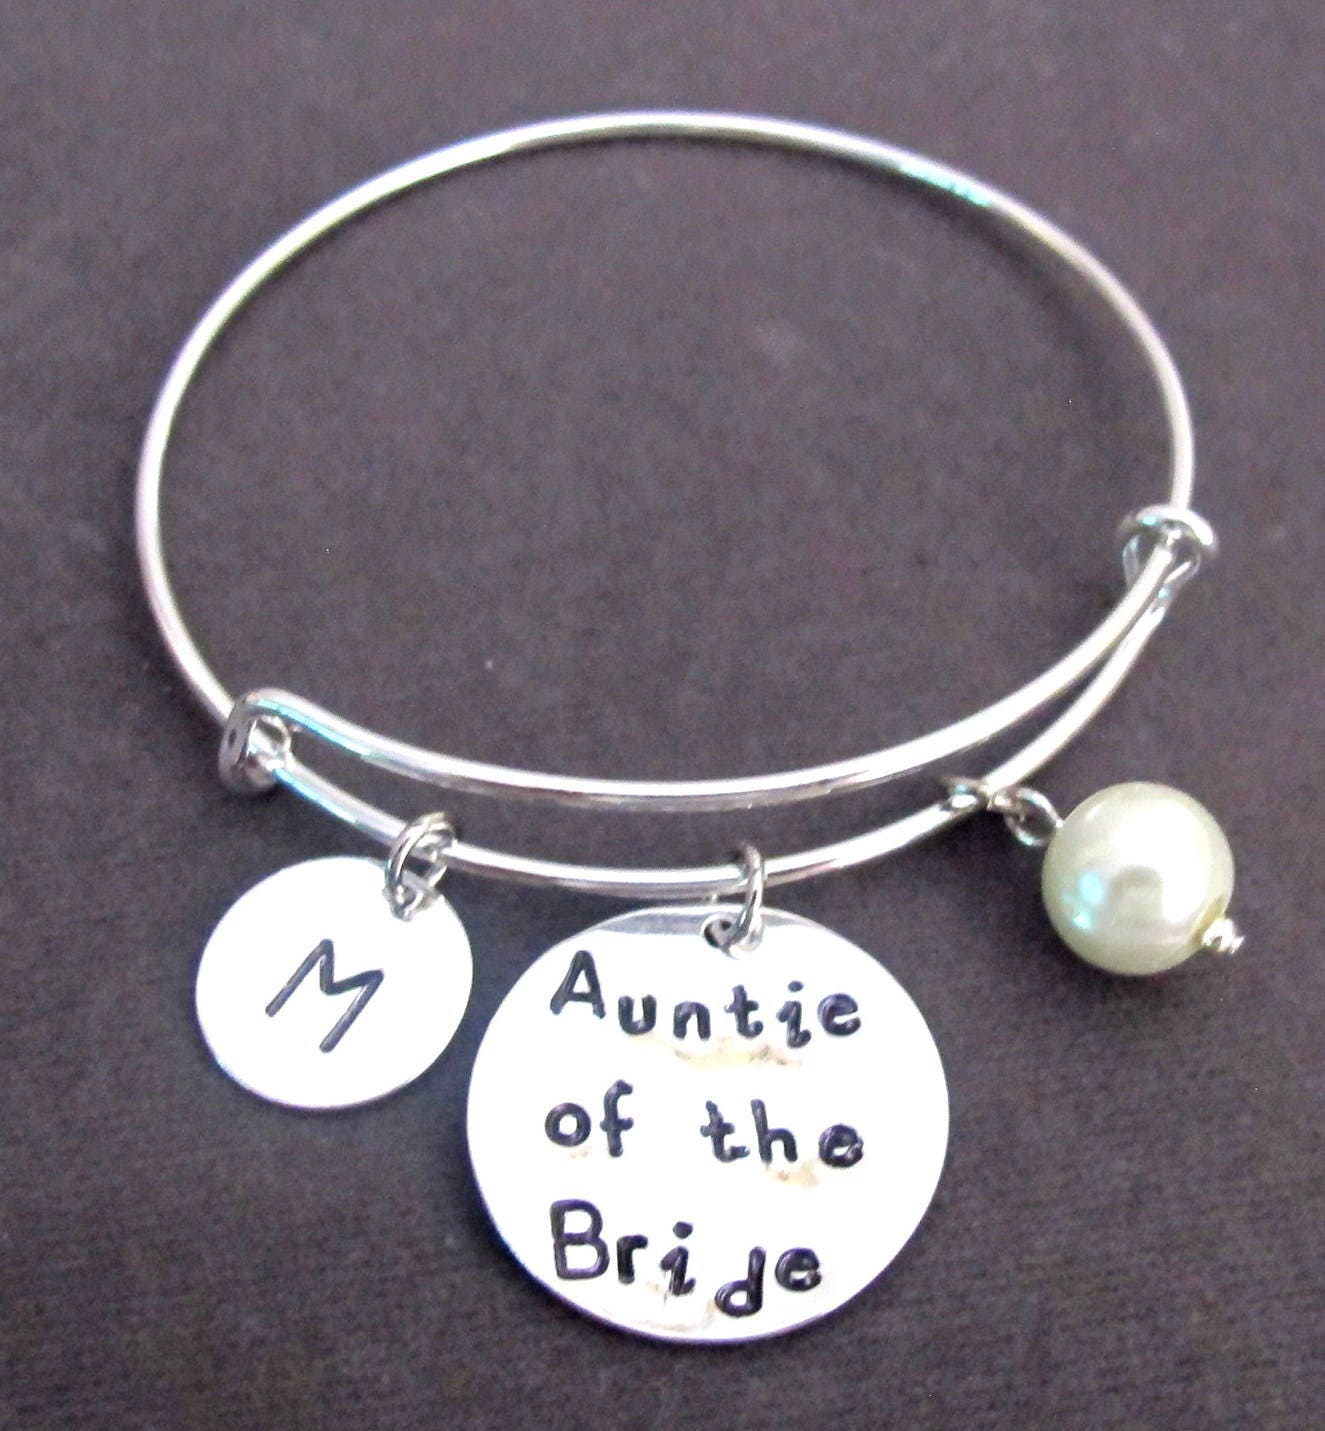 Auntie Of The Bride Braceletaunt Of The Bride Banglepersonalized